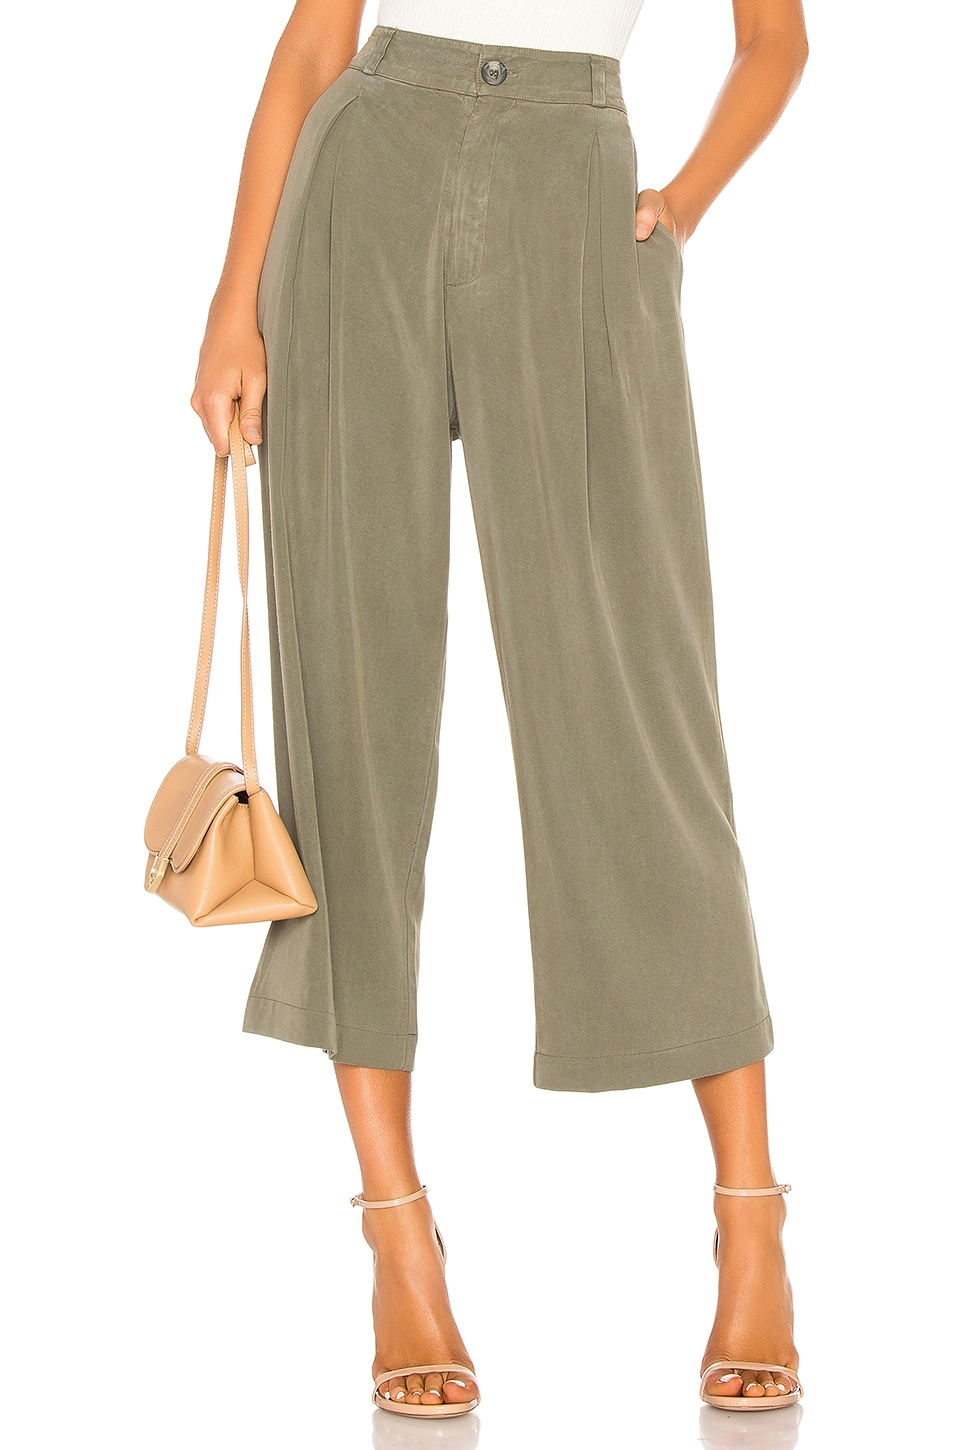 Rachel Pally Twill James Pant in Olive